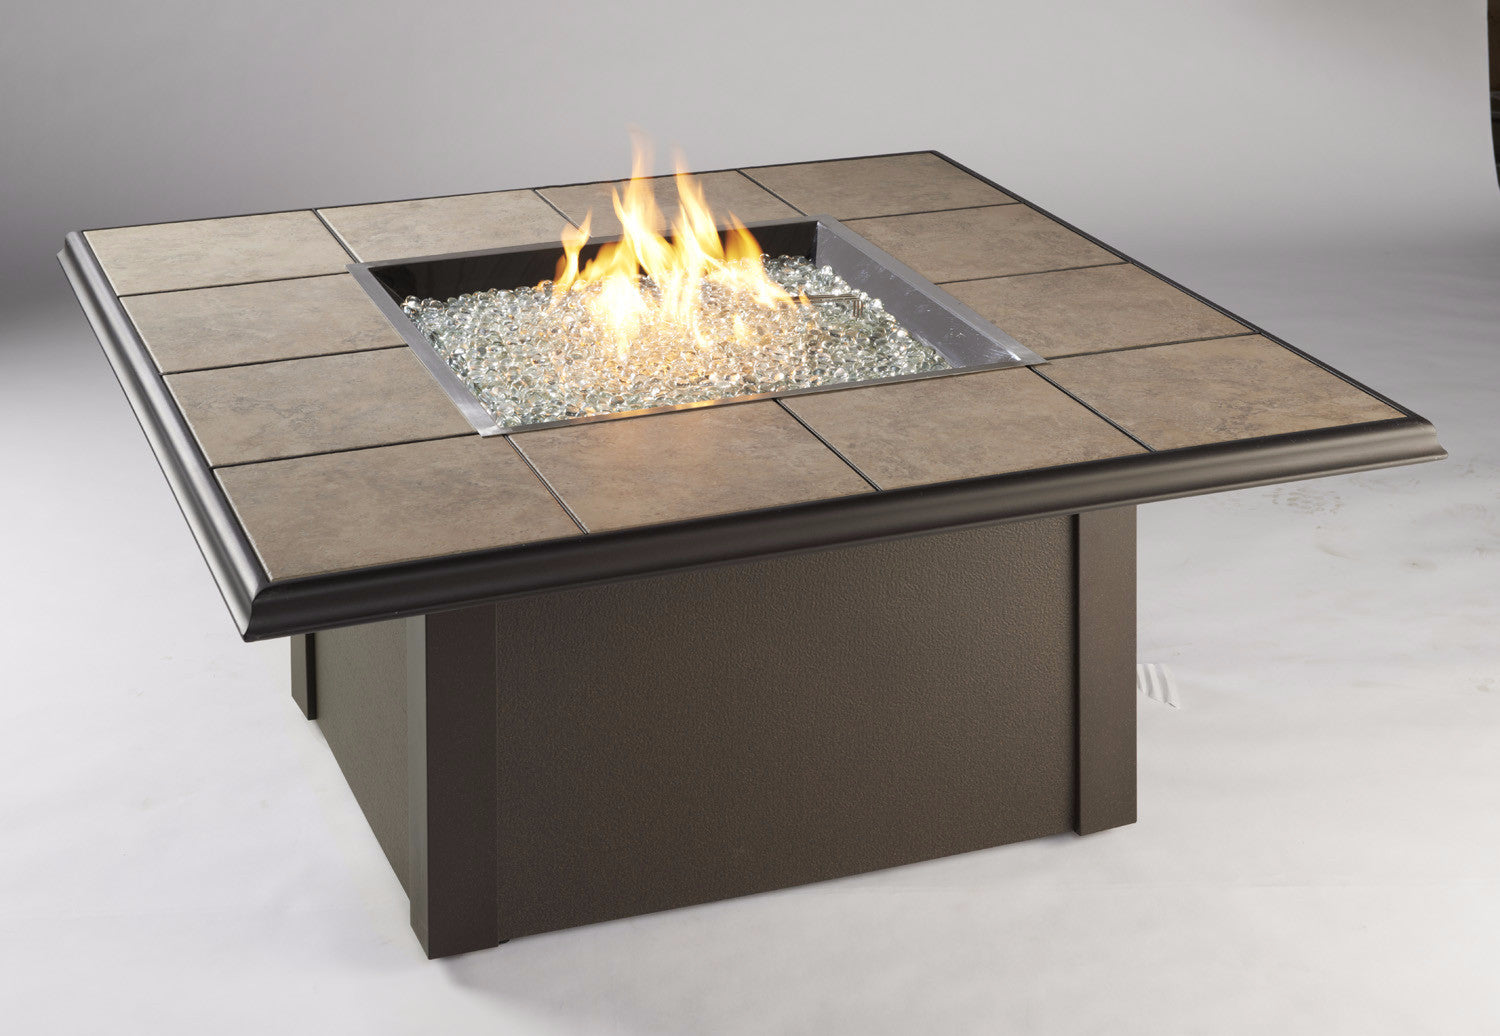 Outdoor Greatroom Square Napa Valley Fire Pit Table Black Or Brown